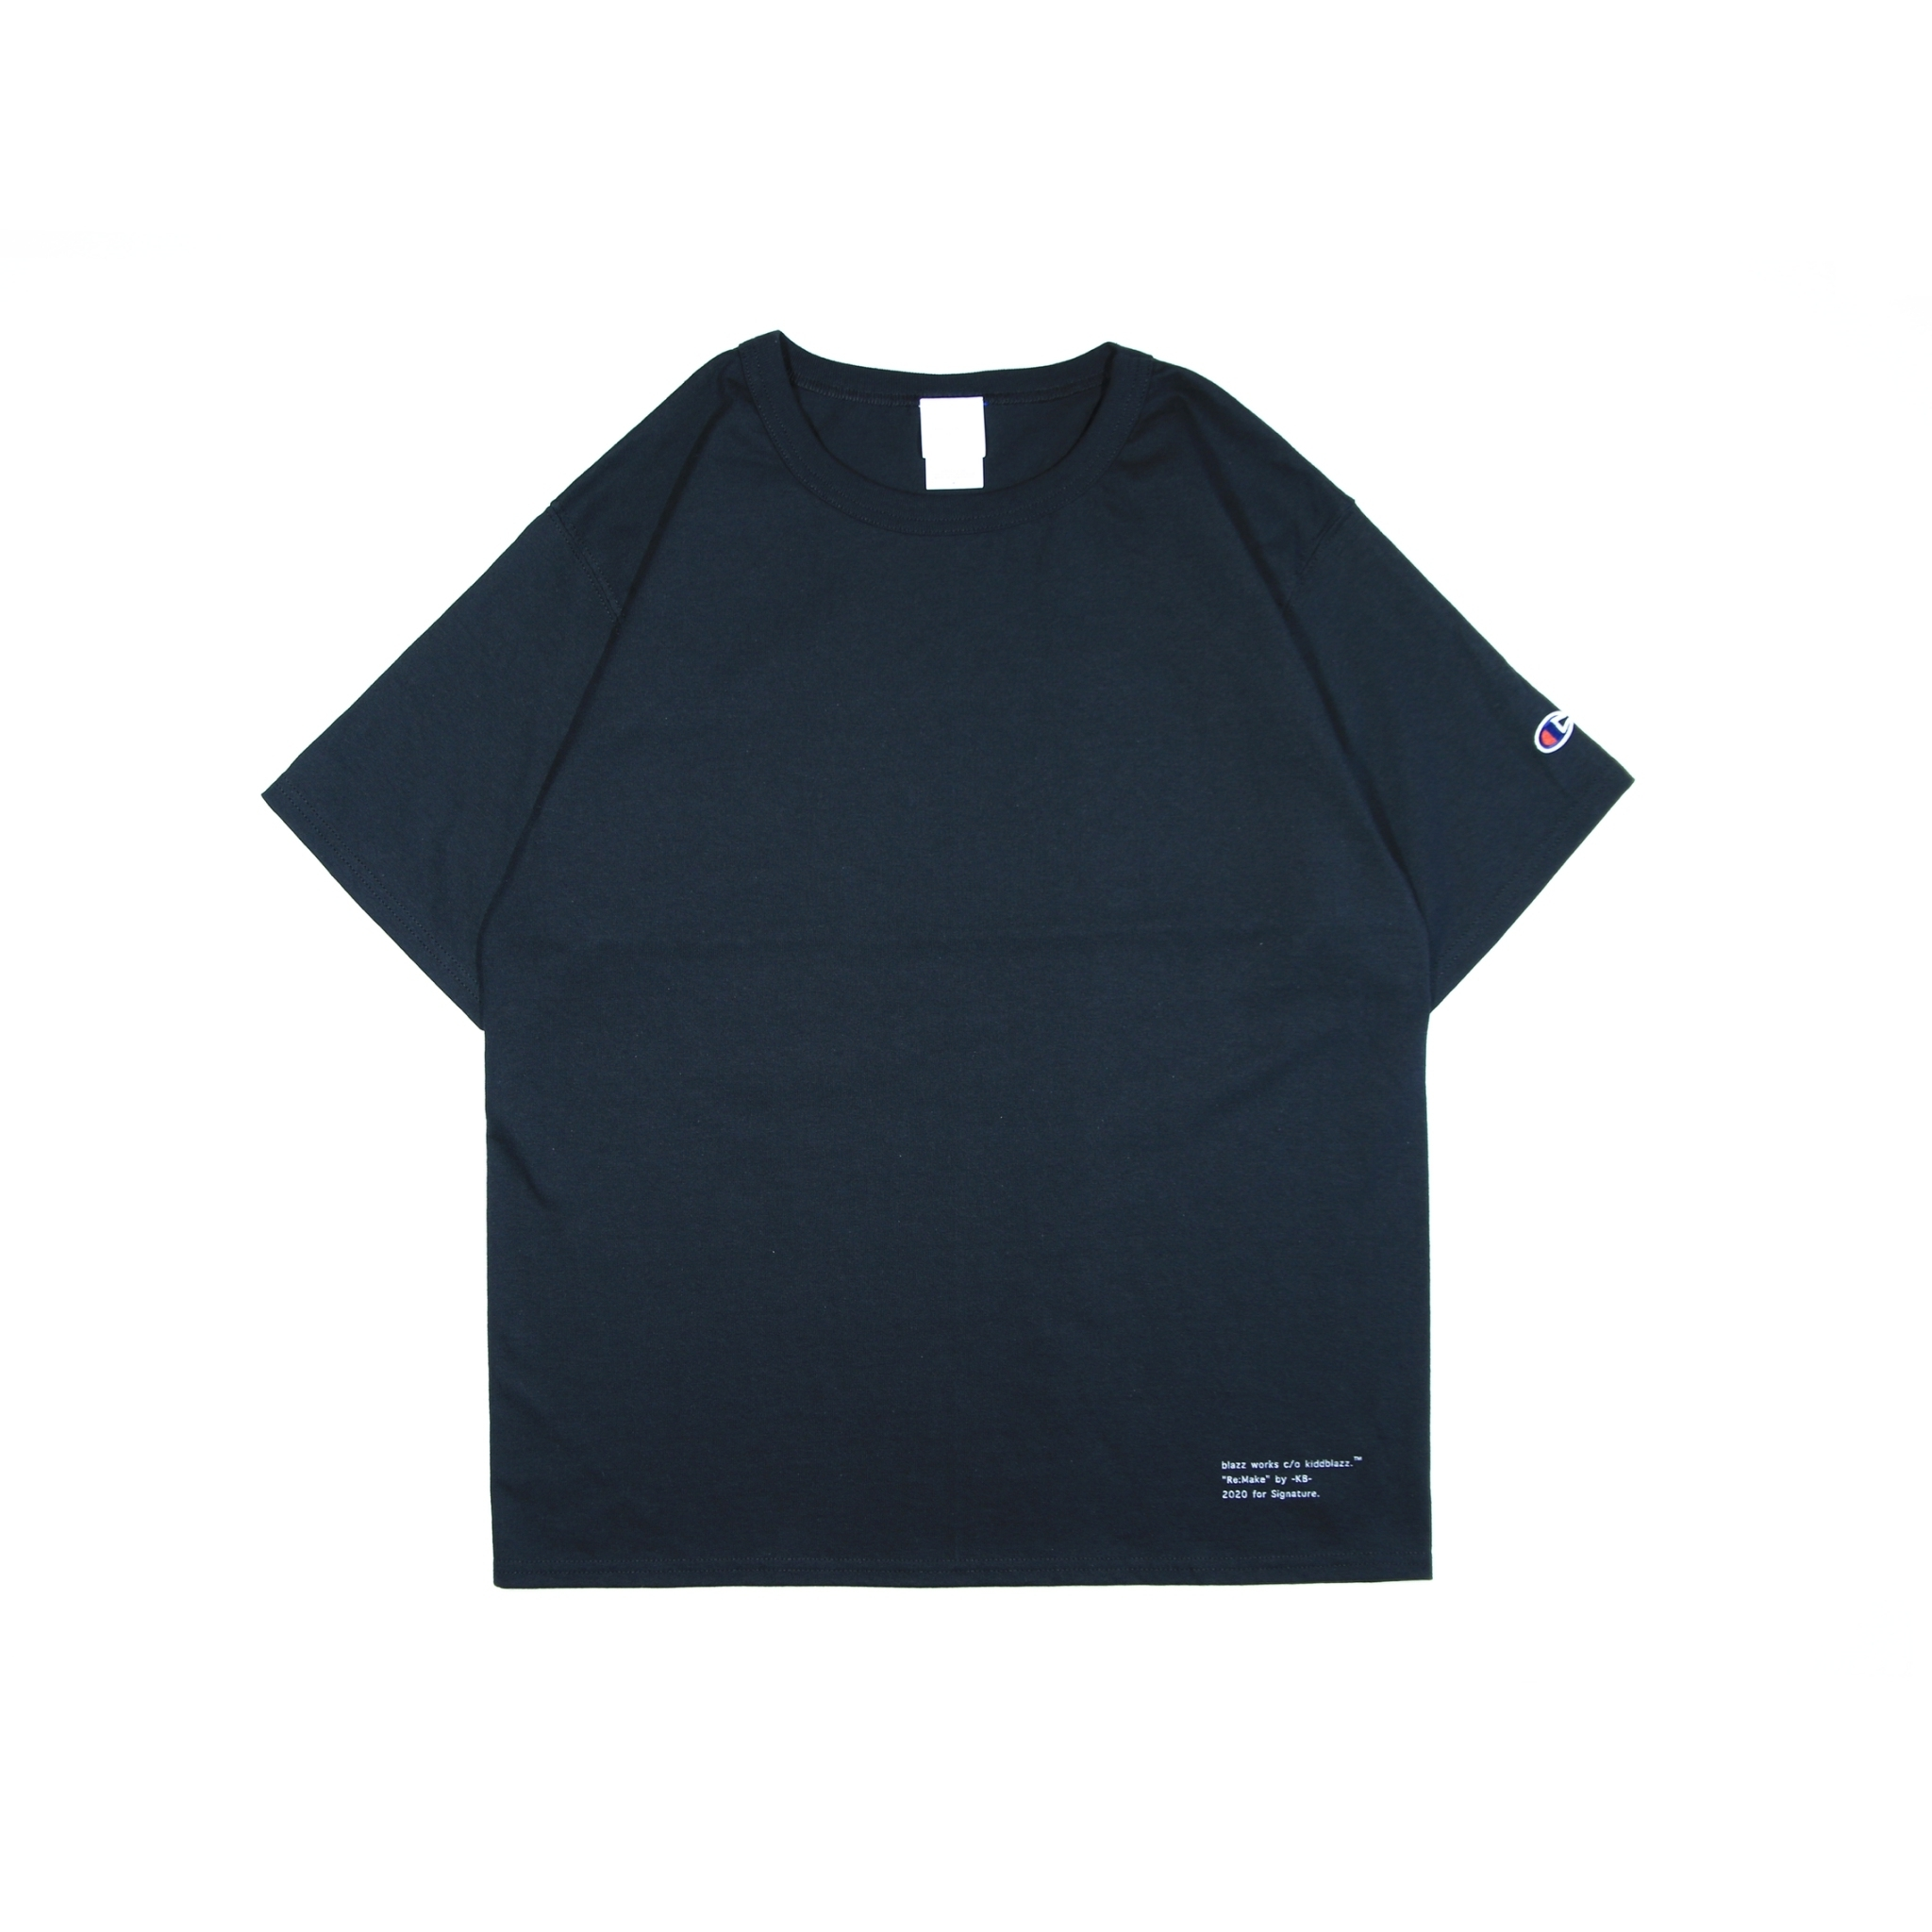 KB CHAMPION 7oz Heritage TEE [BLACK]